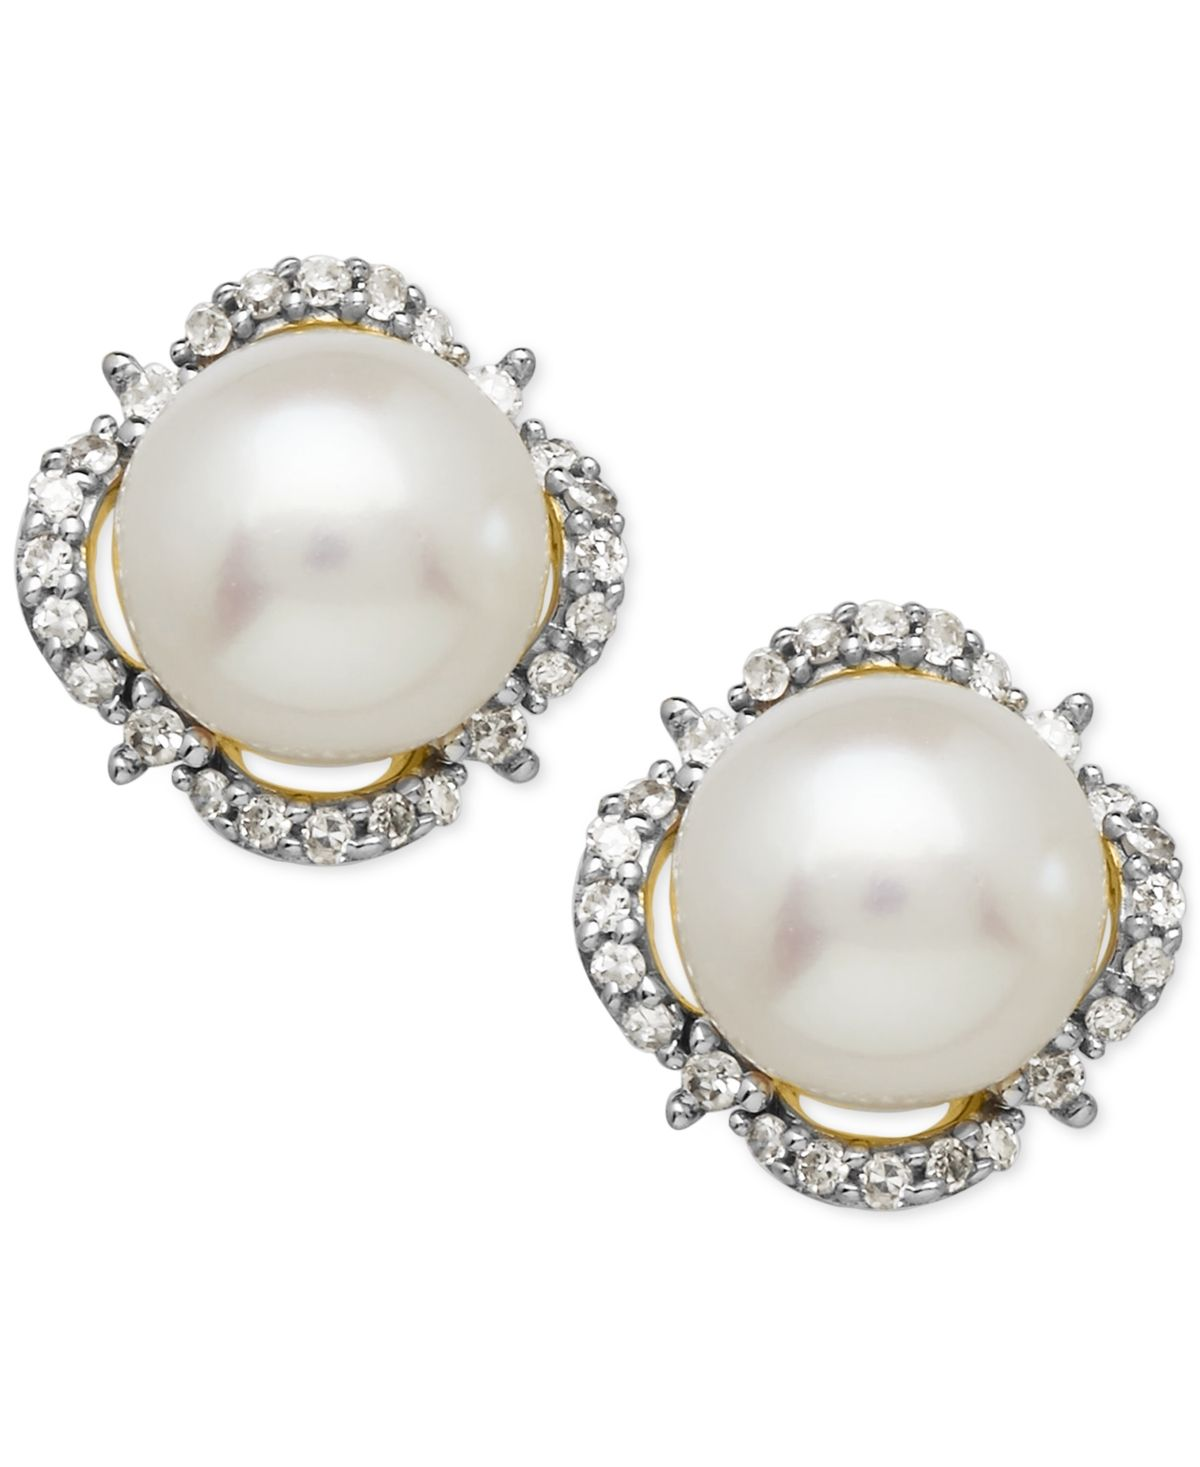 NEW WHITE PEARL STUD EARRINGS 14K YELLOW GOLD GENUINE FRESHWATER BUTTON 7MM